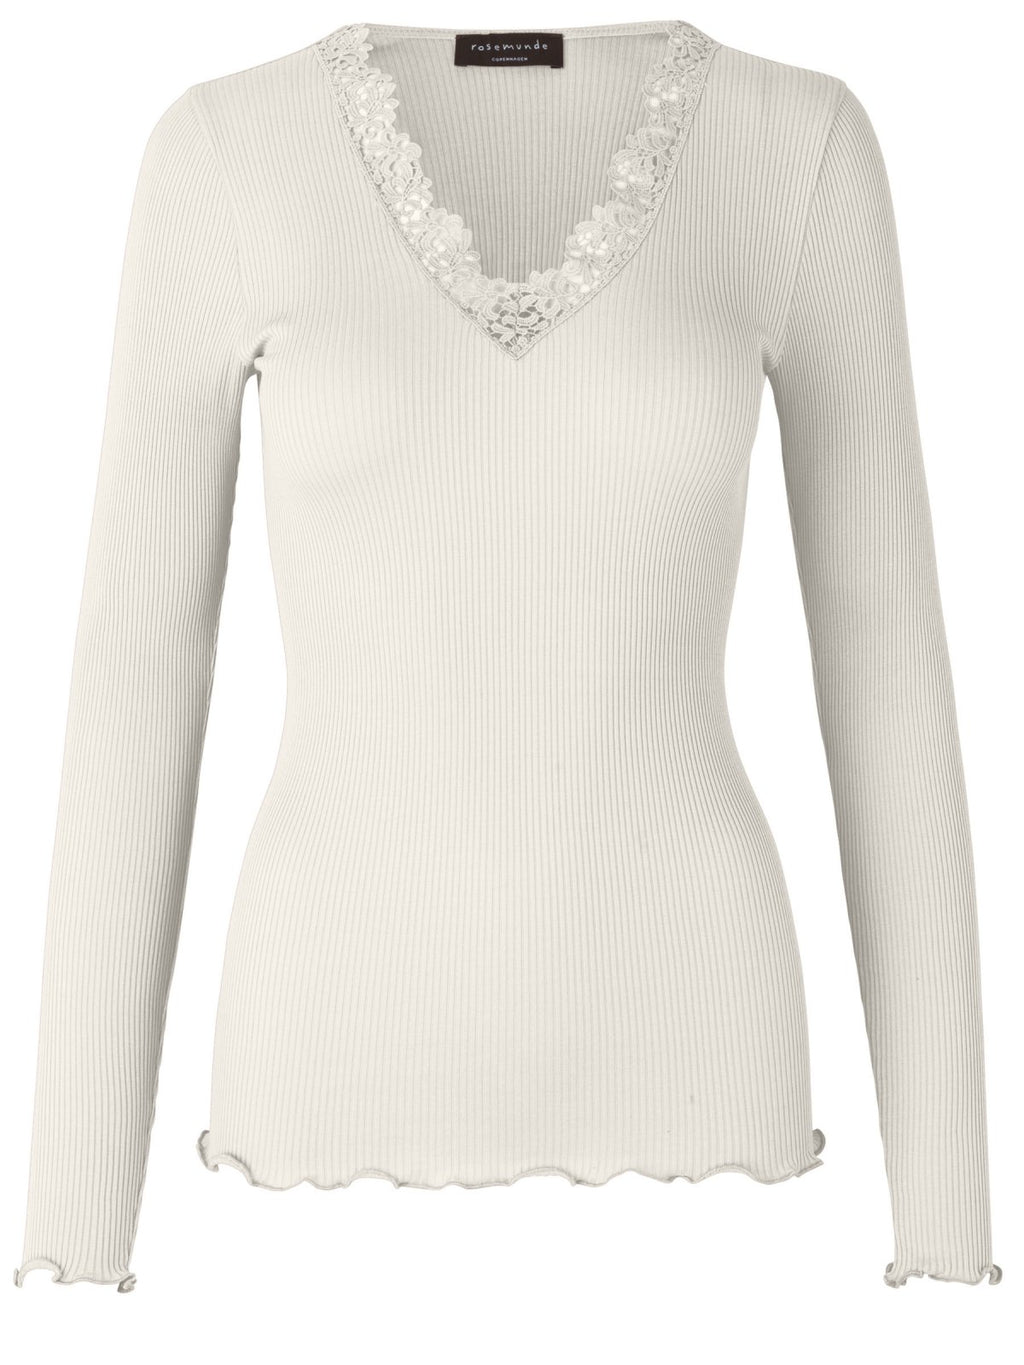 Rosemunde - silk blouse with crochet lace